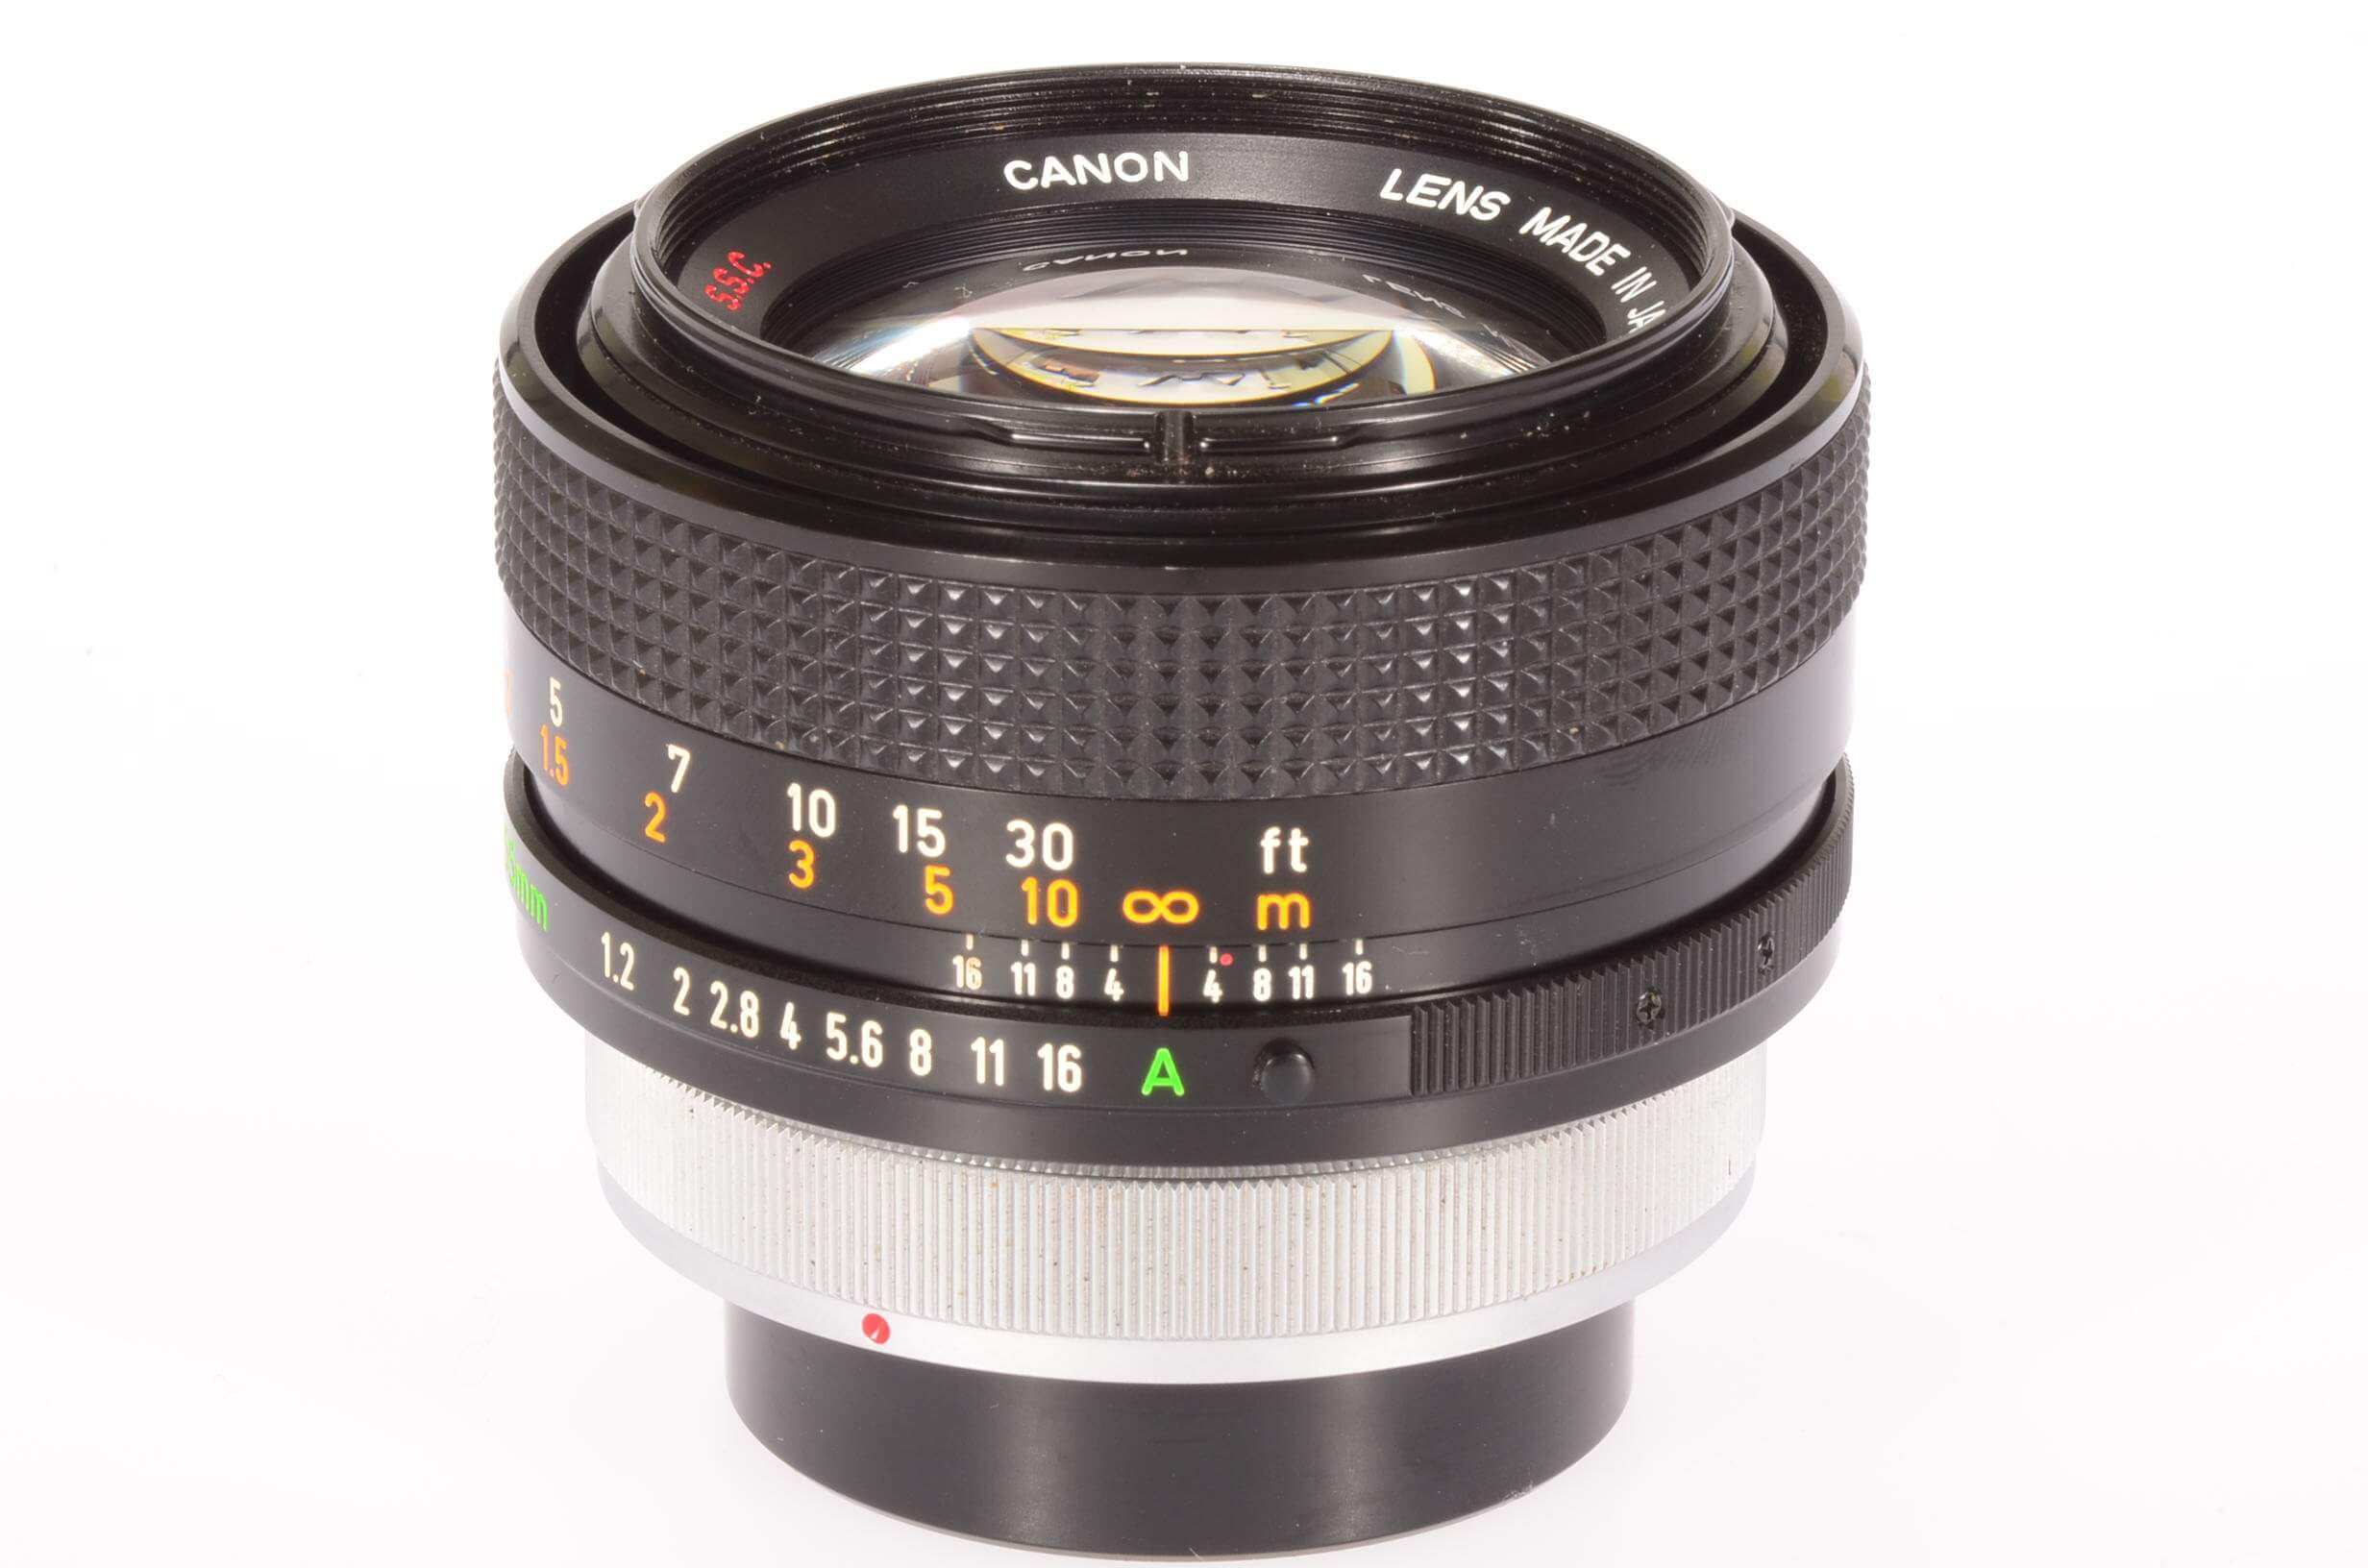 Canon 55mm f1.2 SSC lens, manual focus breechlock mount, stunning condition!